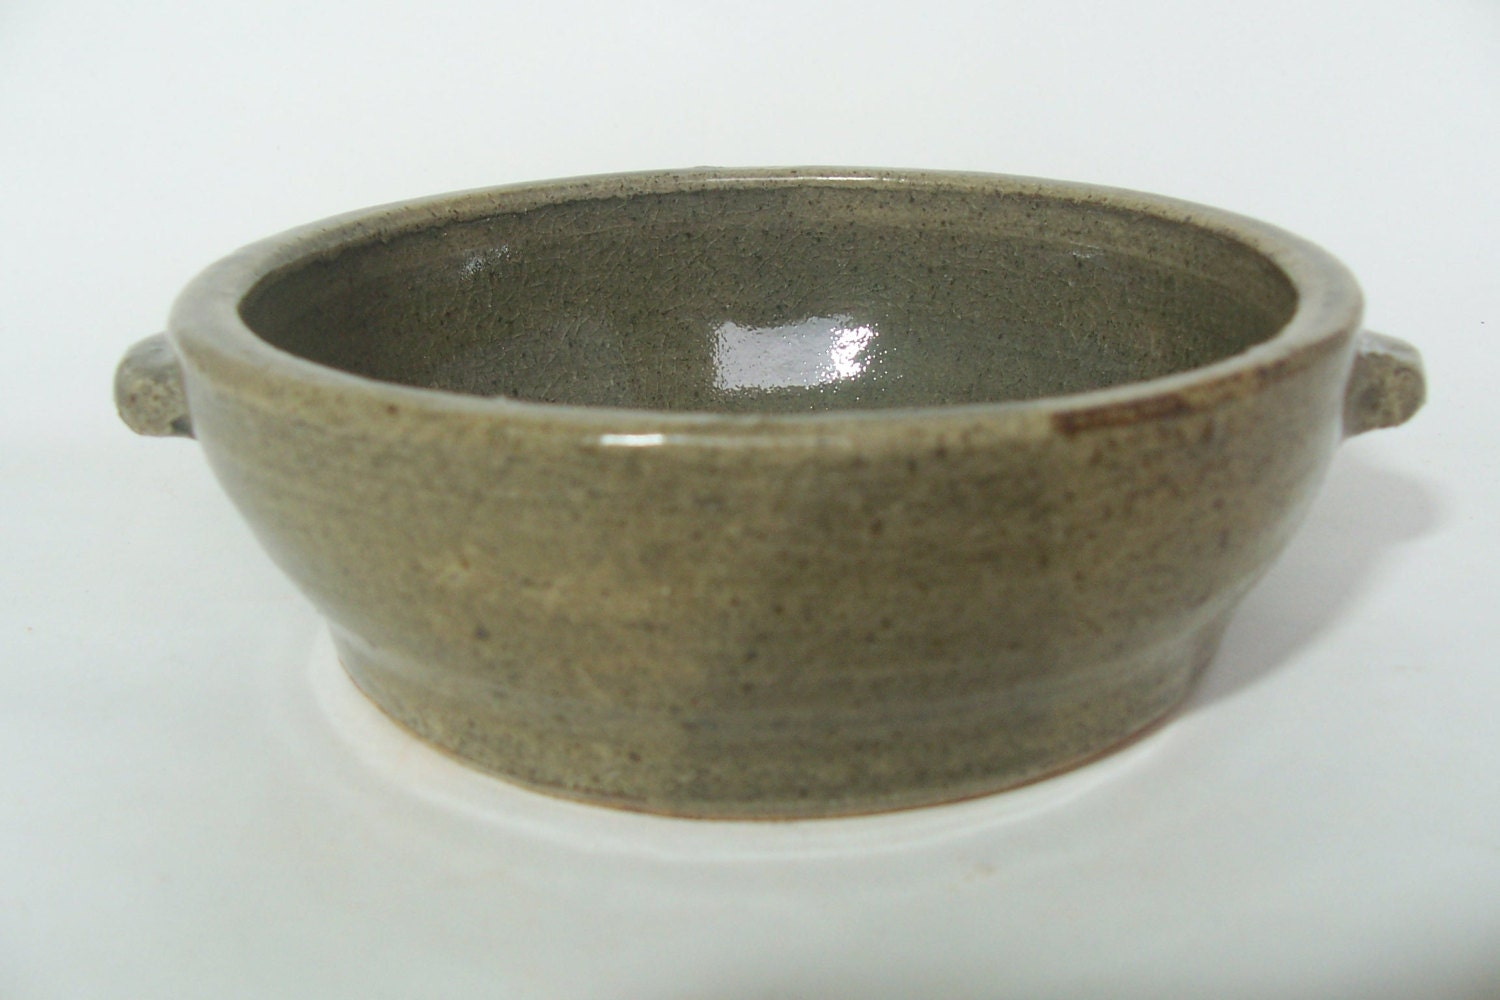 Stone Baking Dish : Hand thrown stoneware small baking dish with by